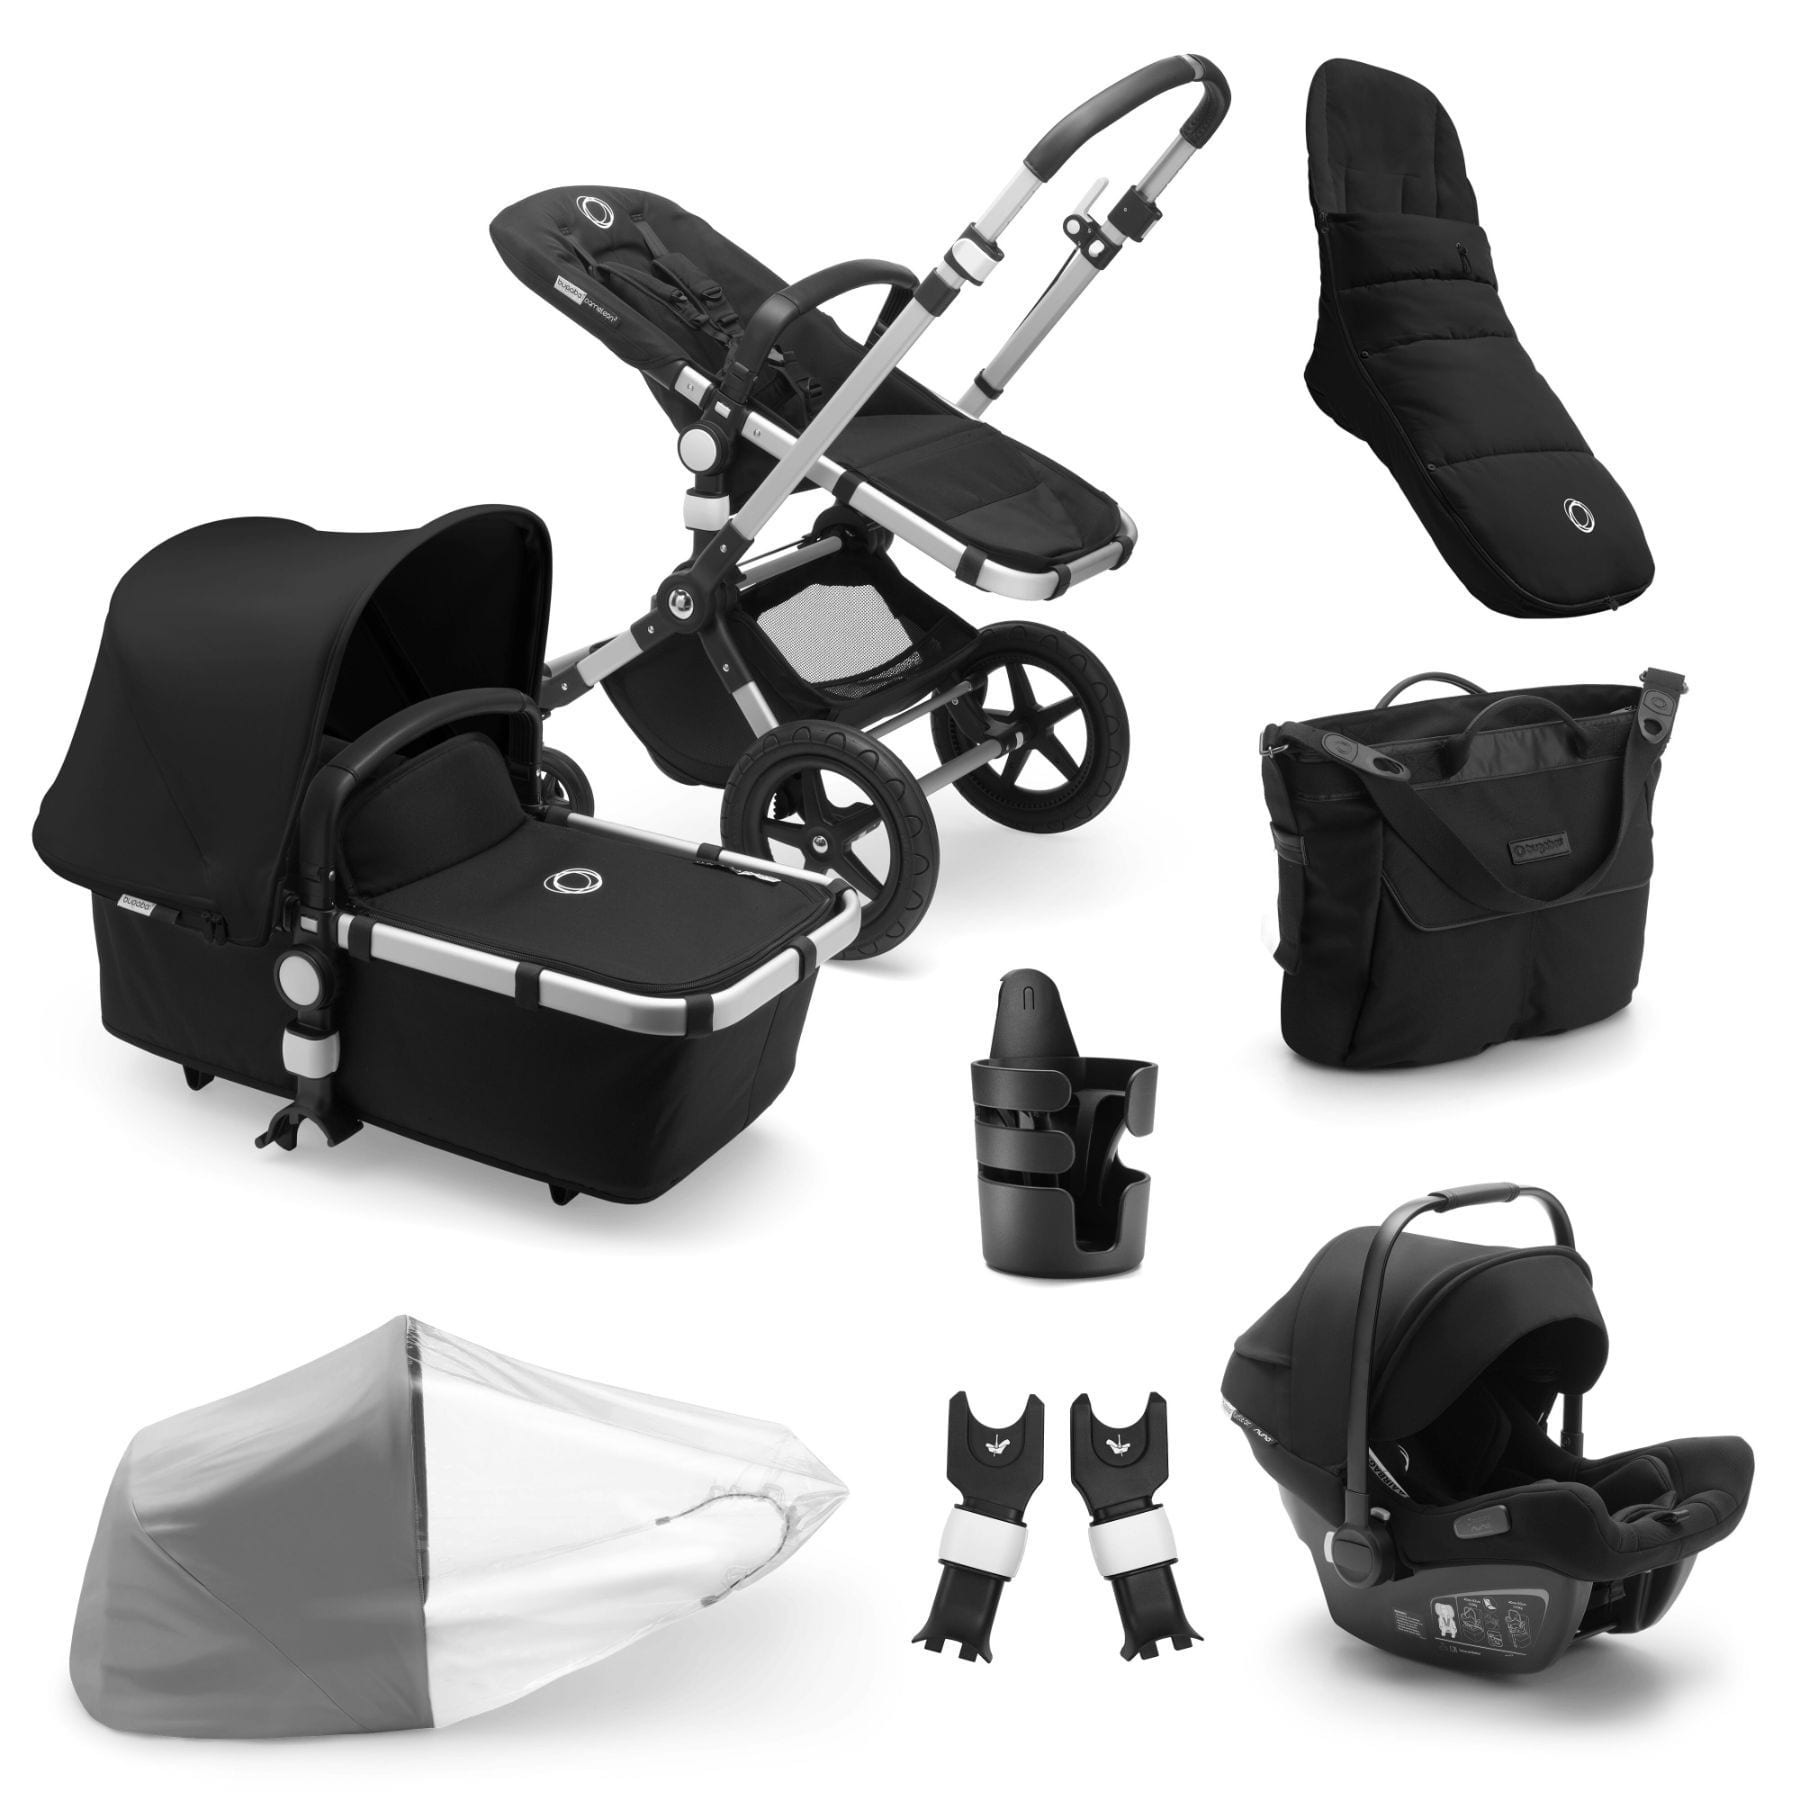 Bugaboo Cameleon Ready To Go Bundle - Alu Frame Pushchairs & Accessories Bugaboo